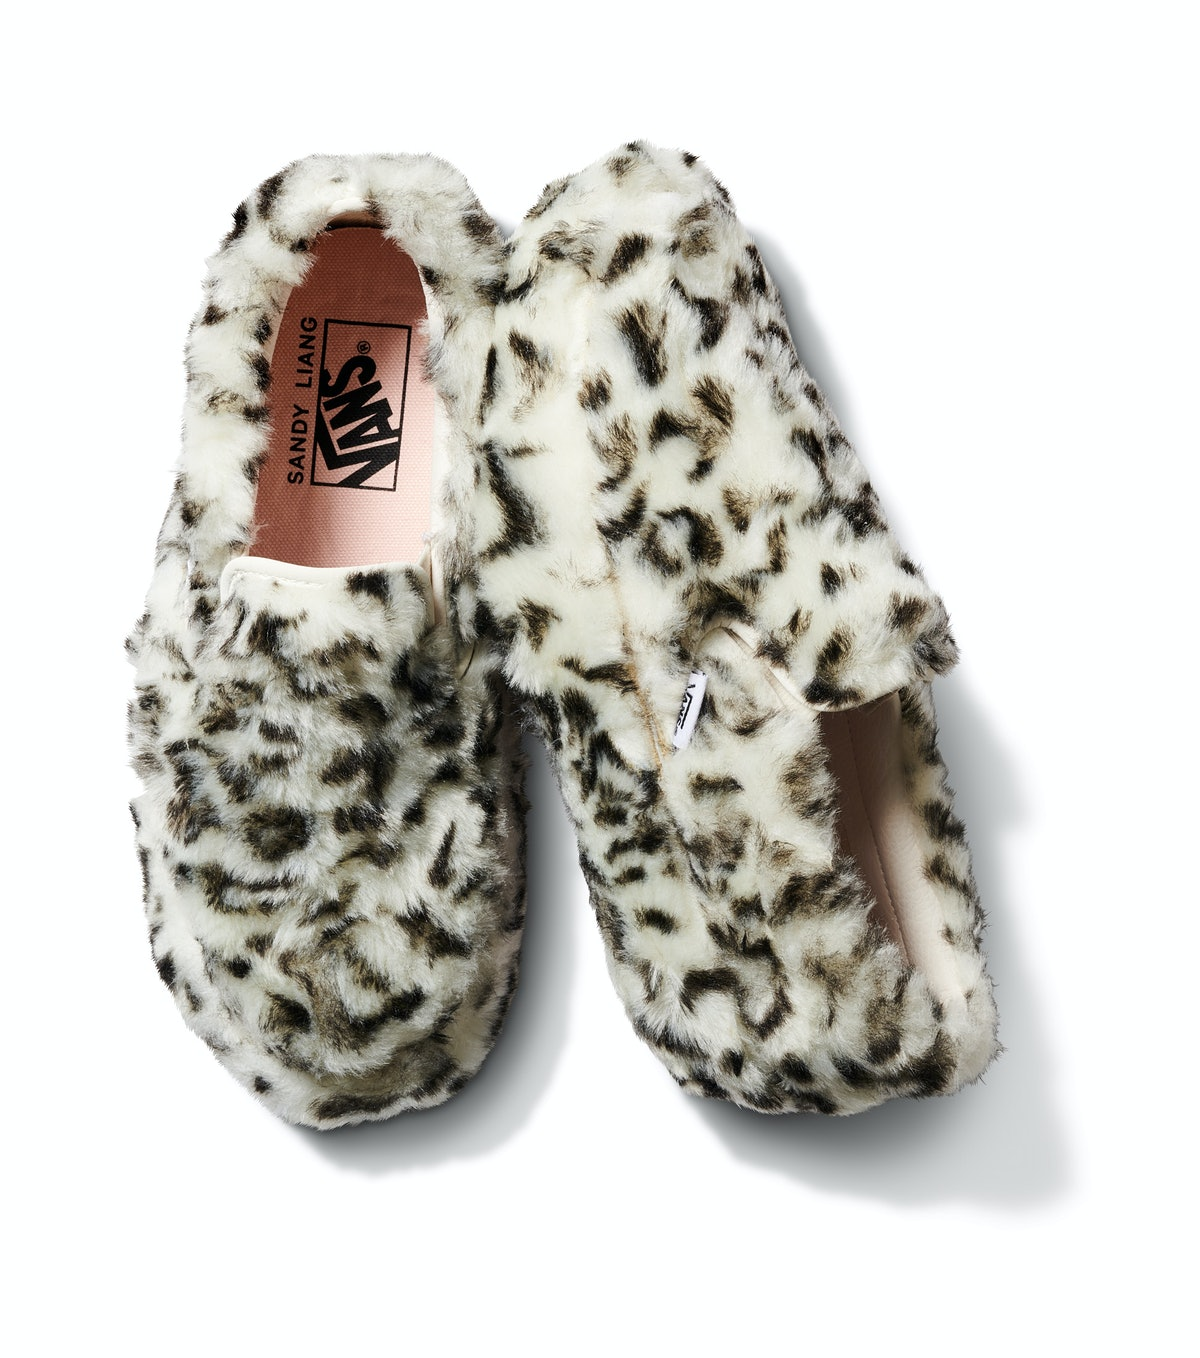 The Vans Platform Slip-On featured in the Sandy Liang collection.